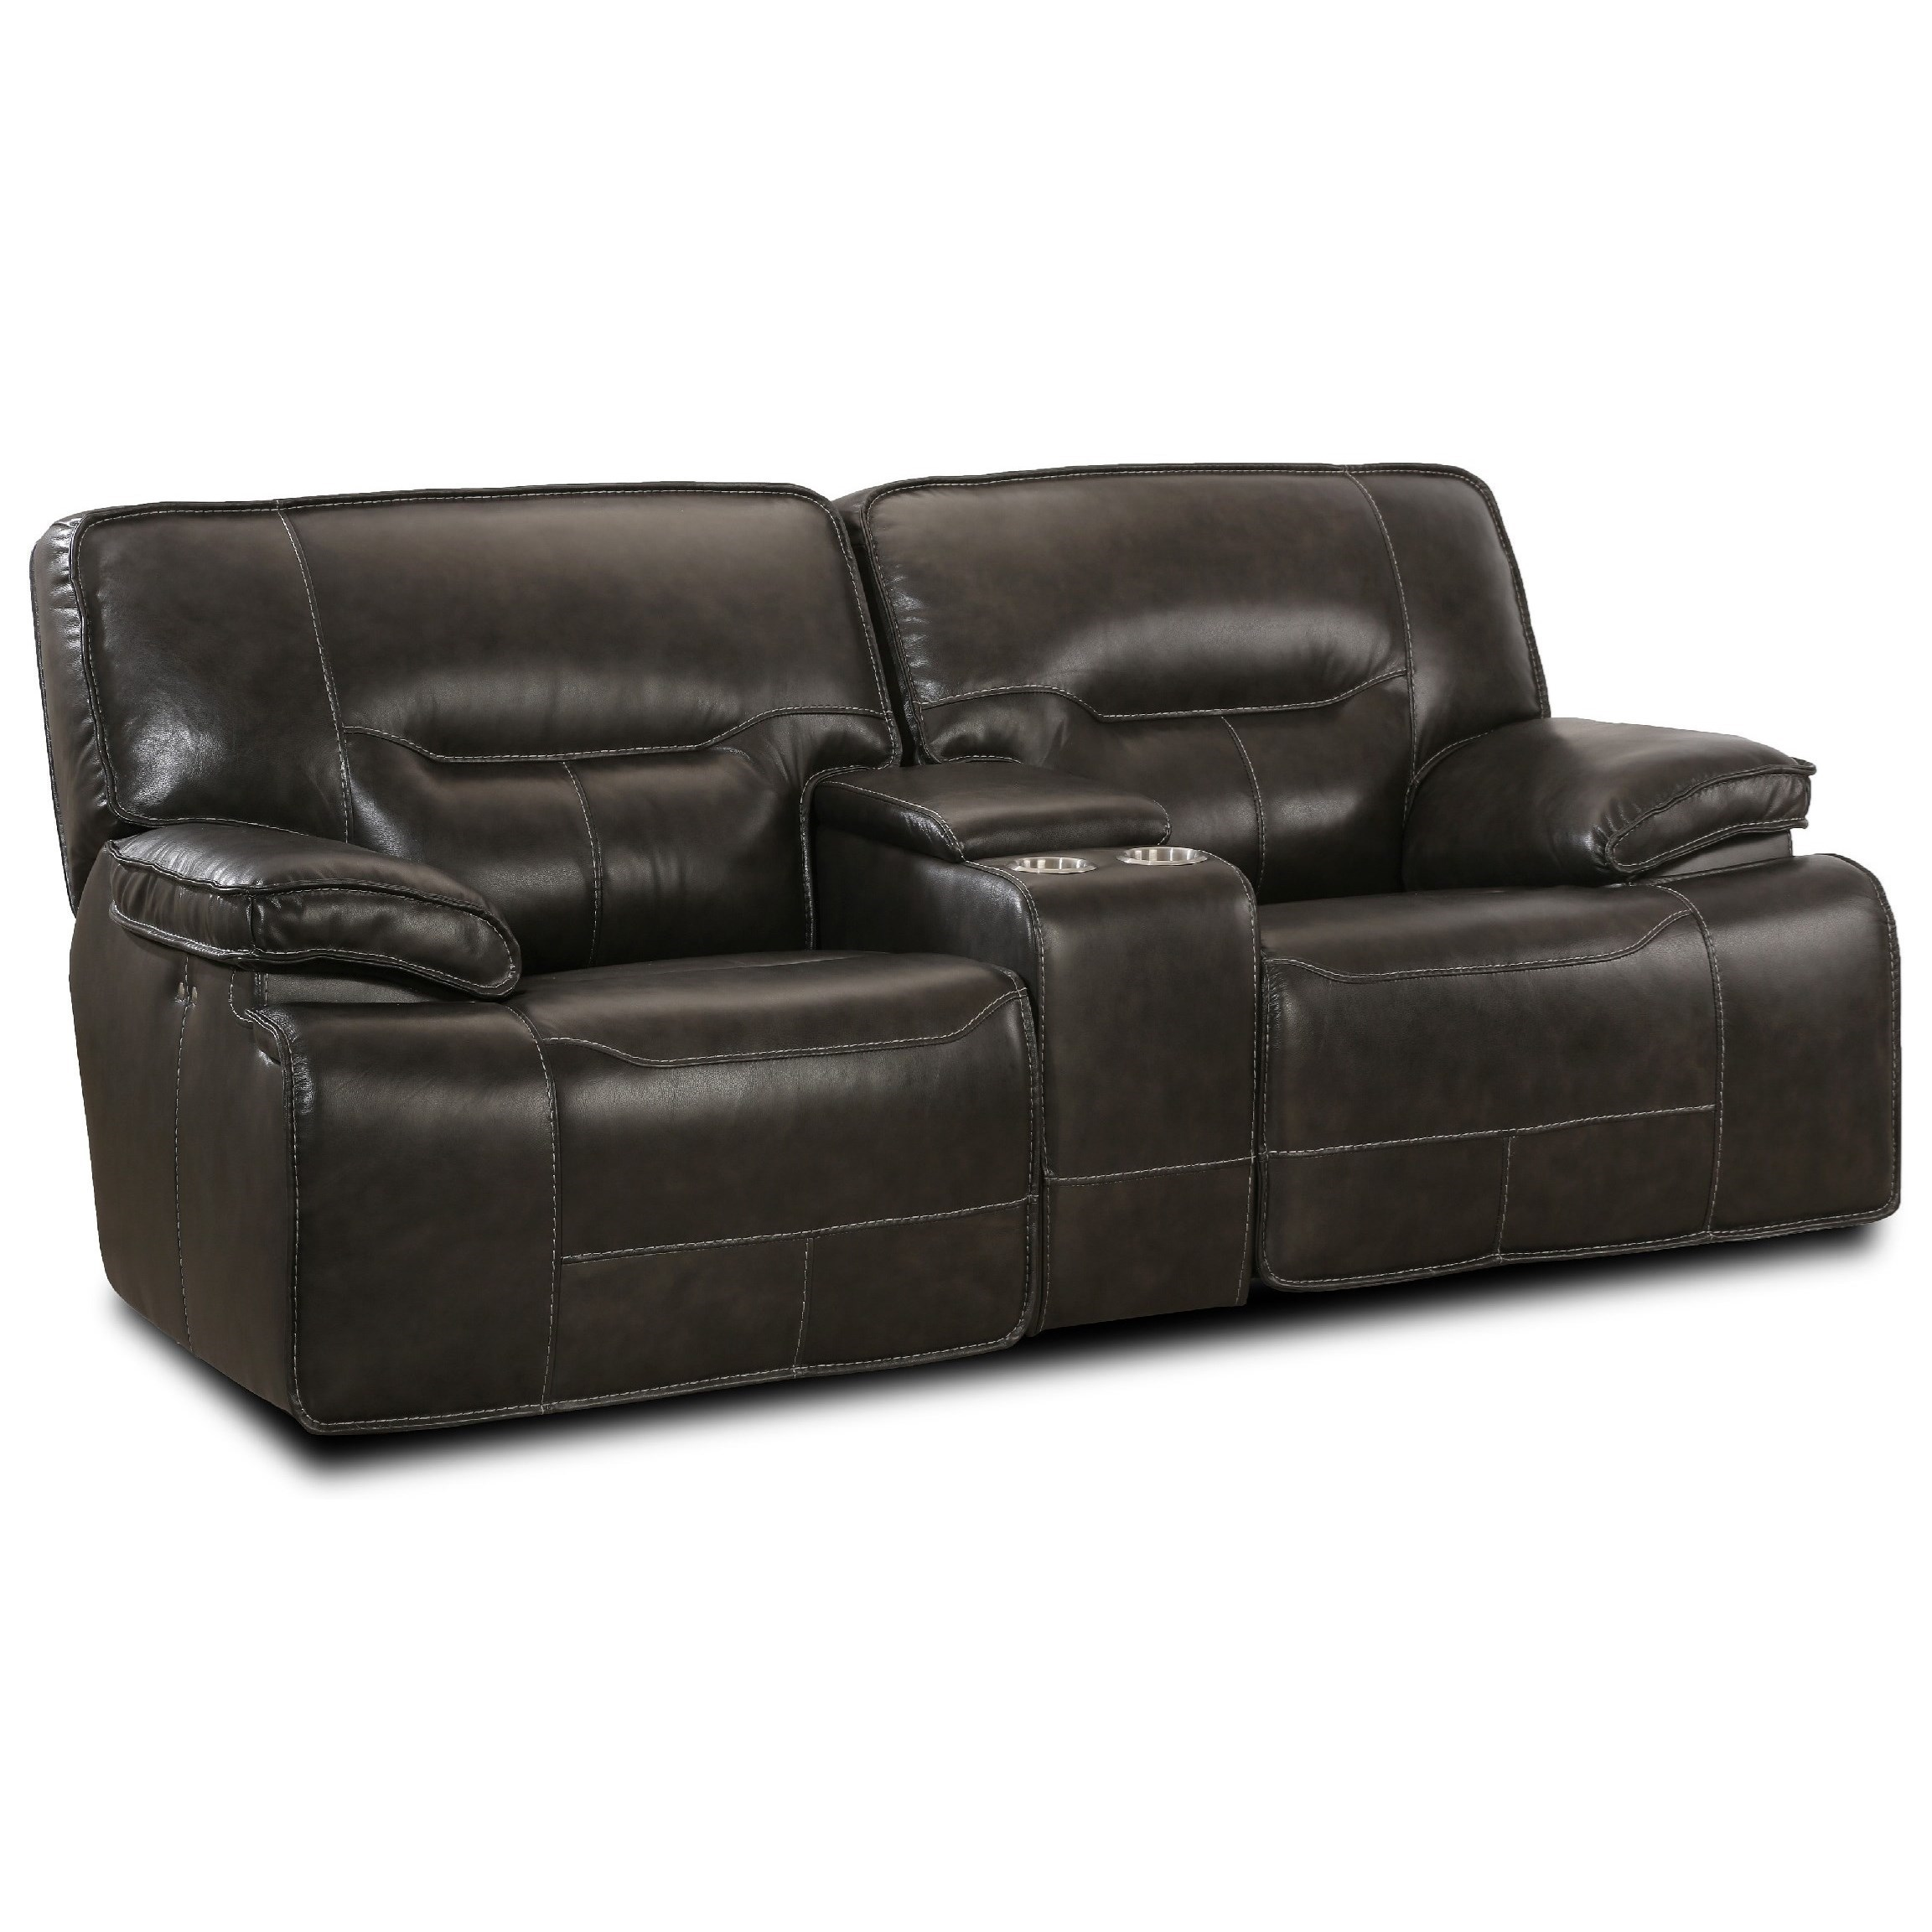 Simon Li Motion Max Leather Match Power Glider Loveseat Recliner W/ Console